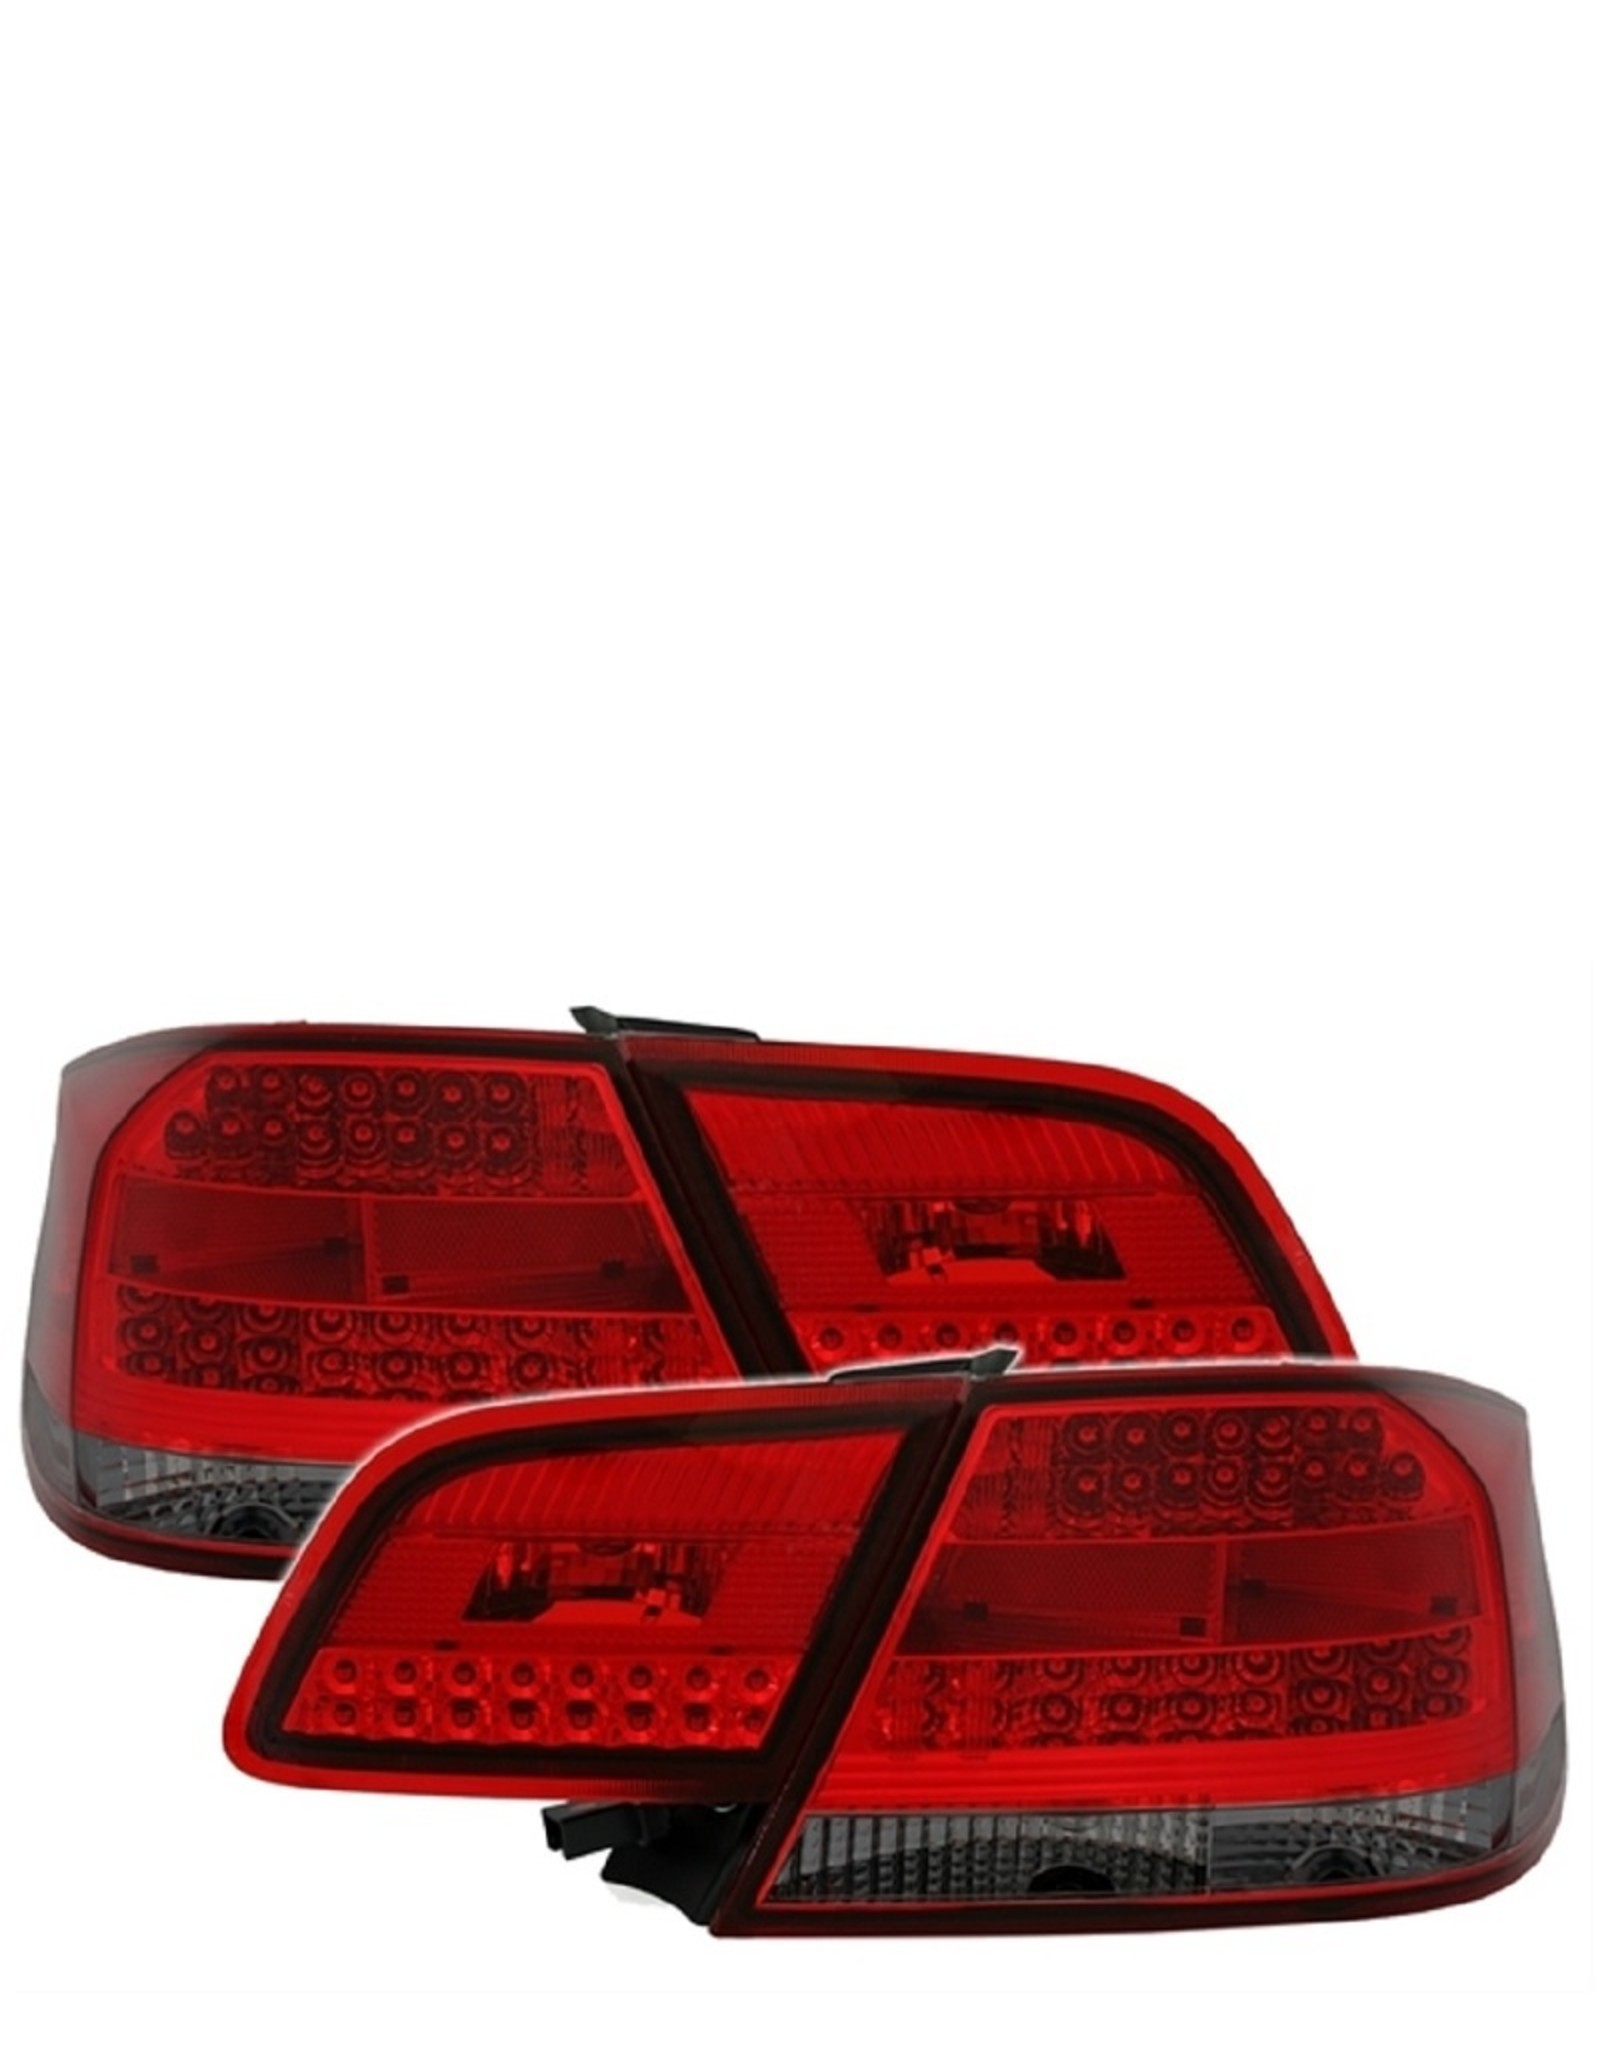 LED achterlichten rood smoke voor BMW 3 serie coupe E92